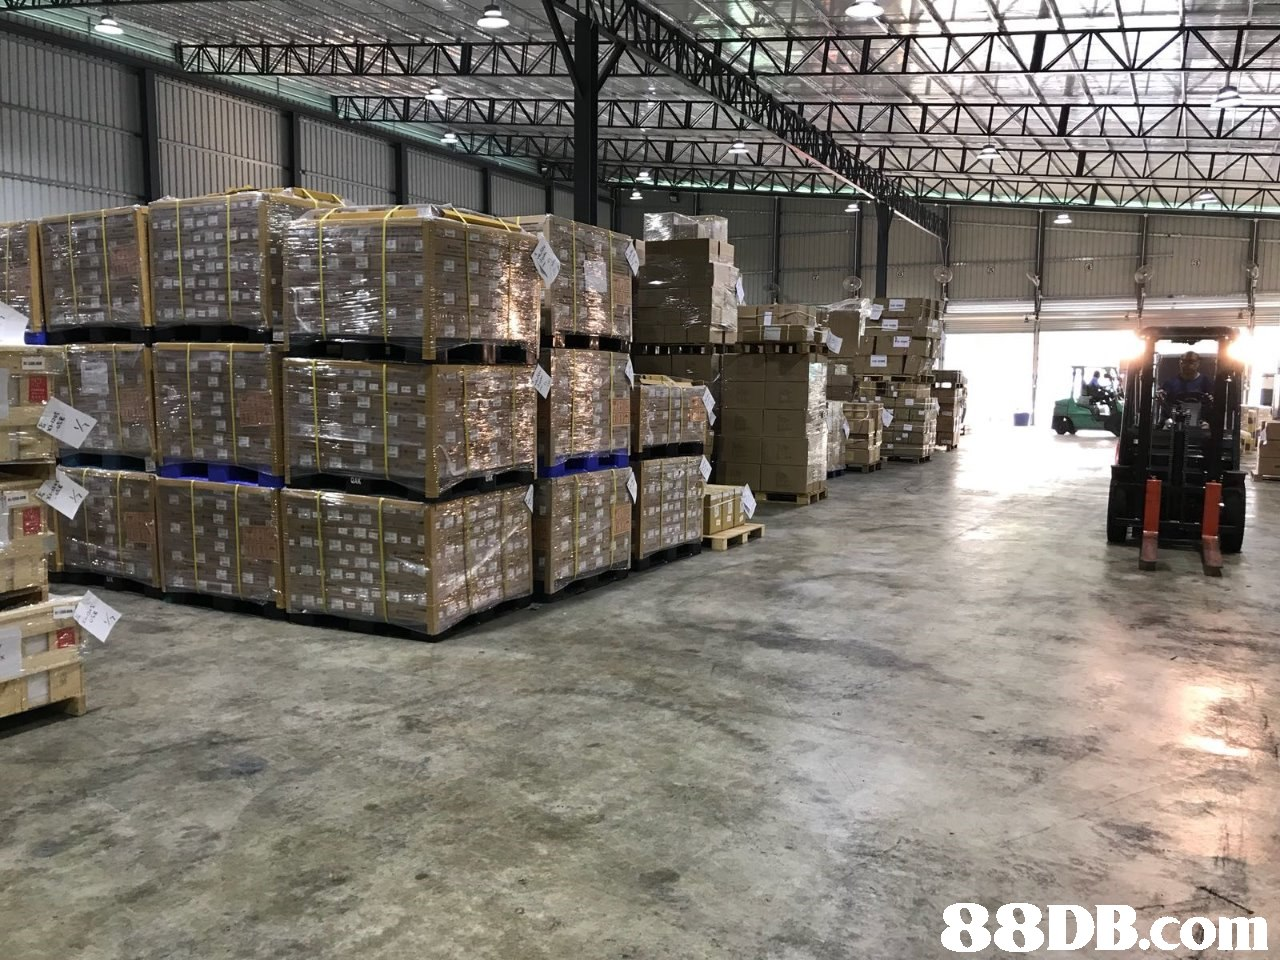 Warehouse,Inventory,Transport,Building